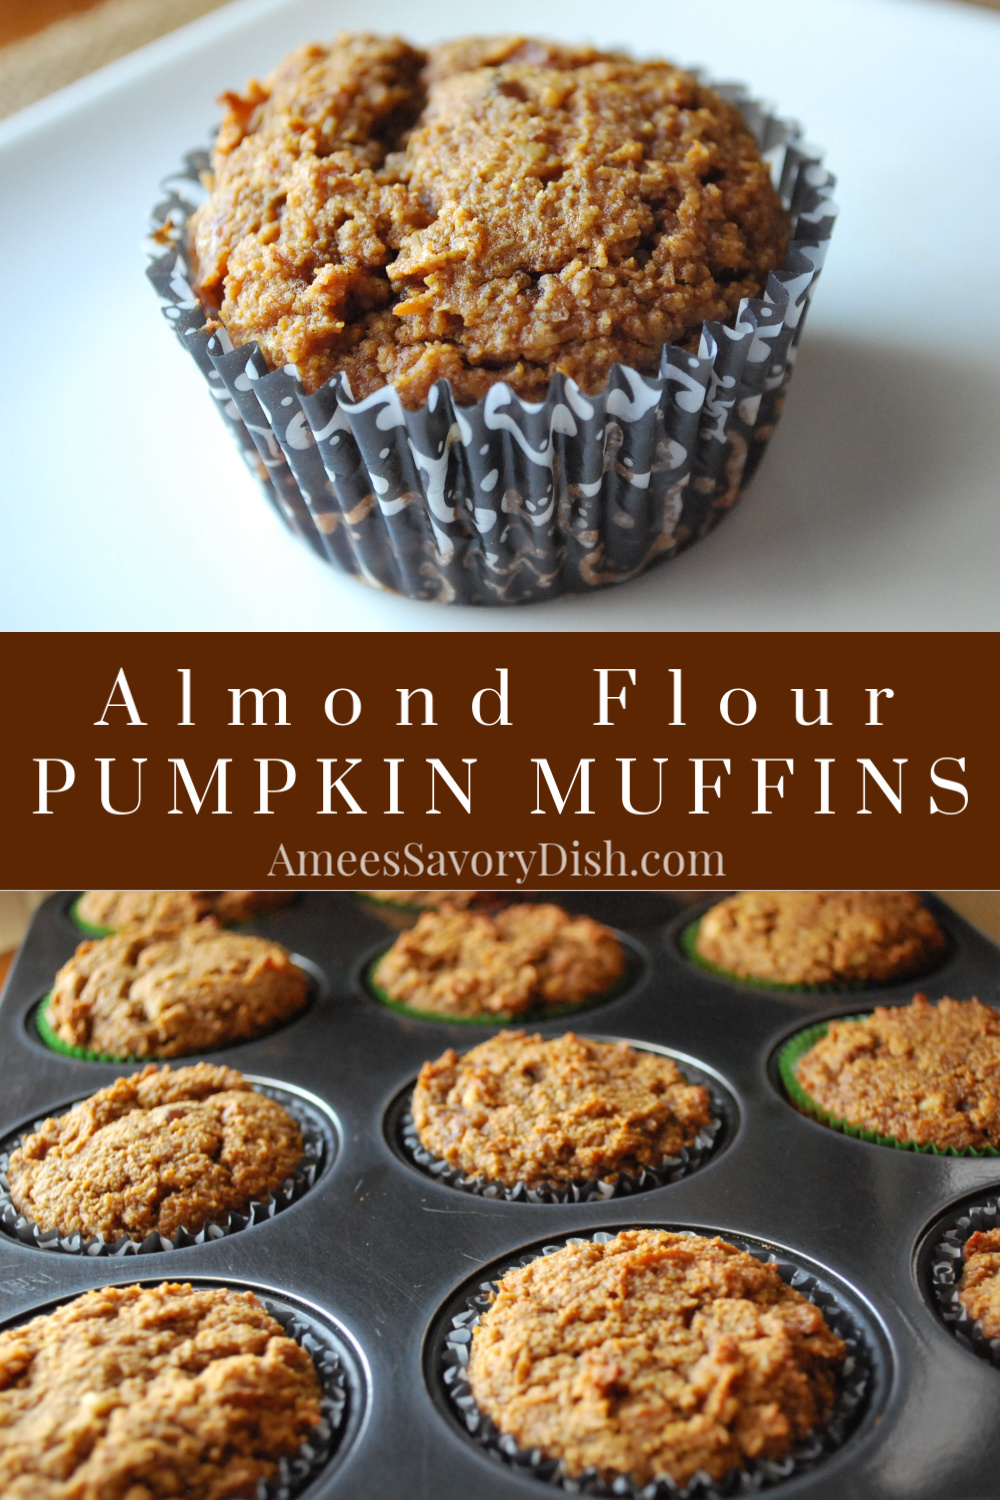 A scrumptious gluten-free recipe for almond flour pumpkin muffins using grain-free flours, dates, and nuts. #almondflourmuffins #grainfreemuffins #glutenfreemuffins via @Ameecooks